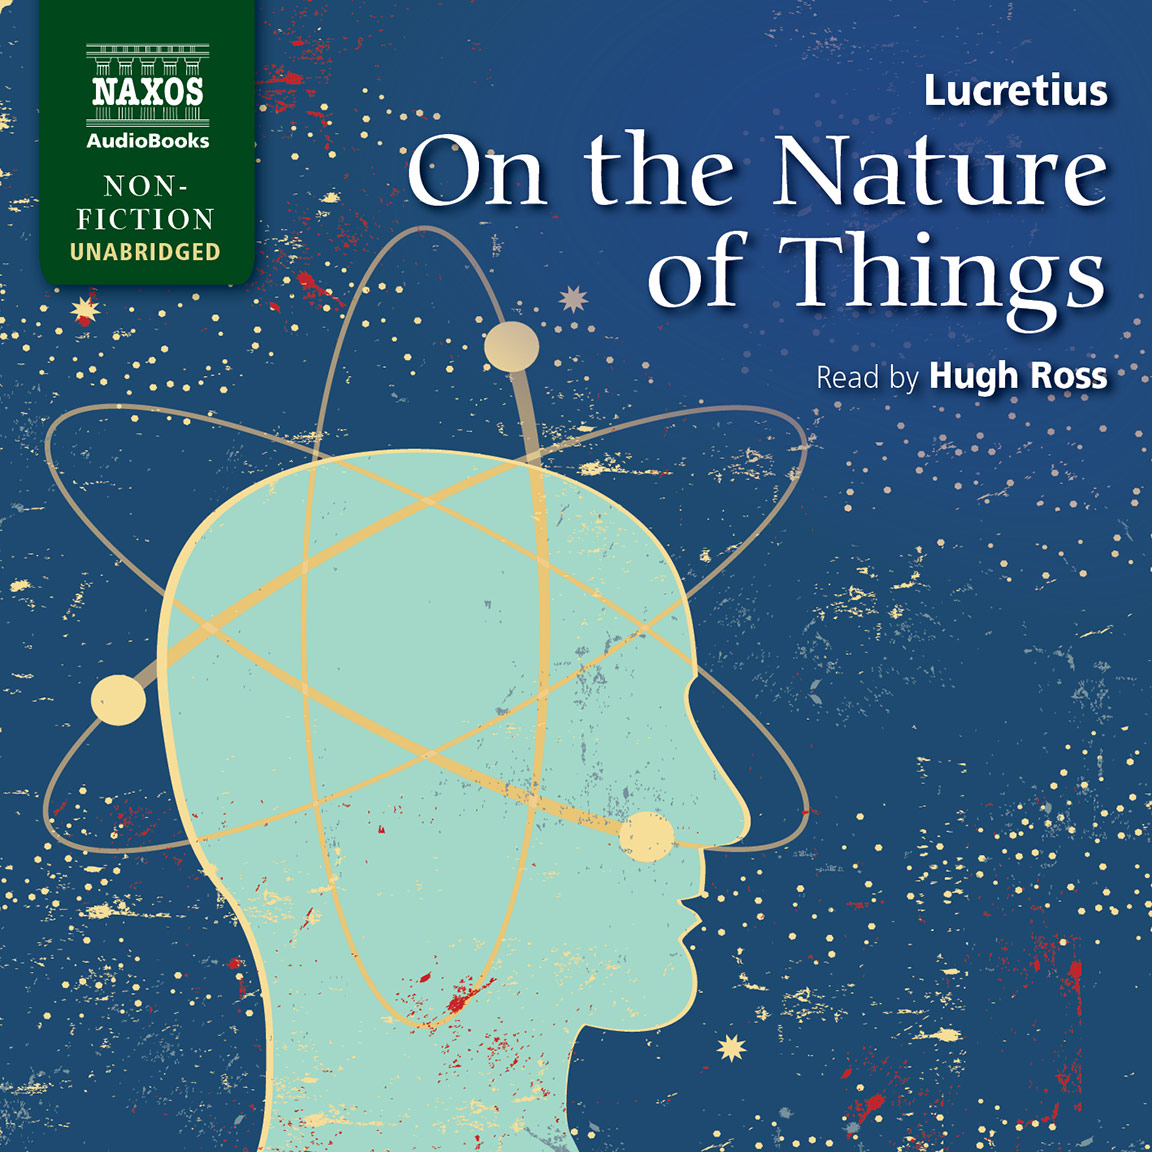 On the Nature of Things (unabridged)